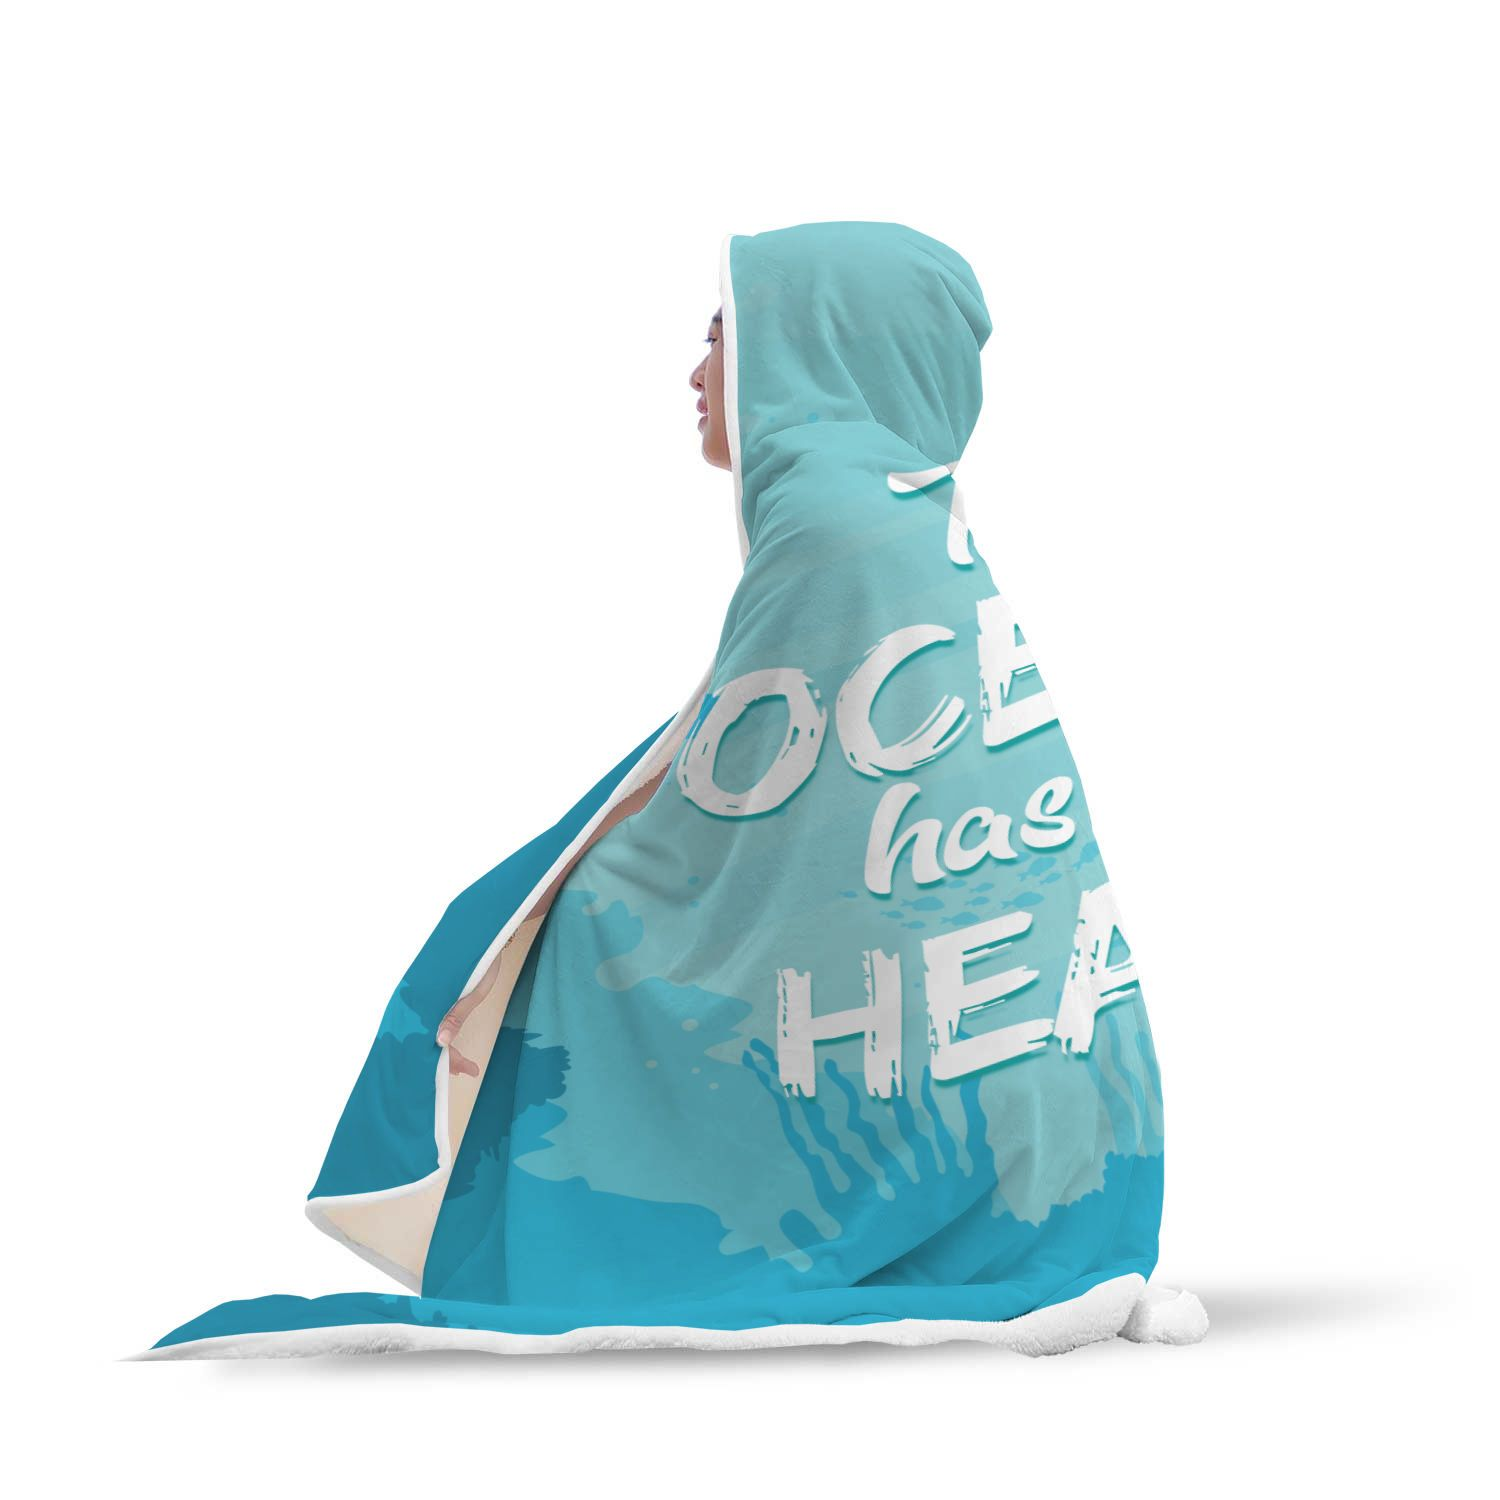 The Ocean Has My Heart Hooded Blanket